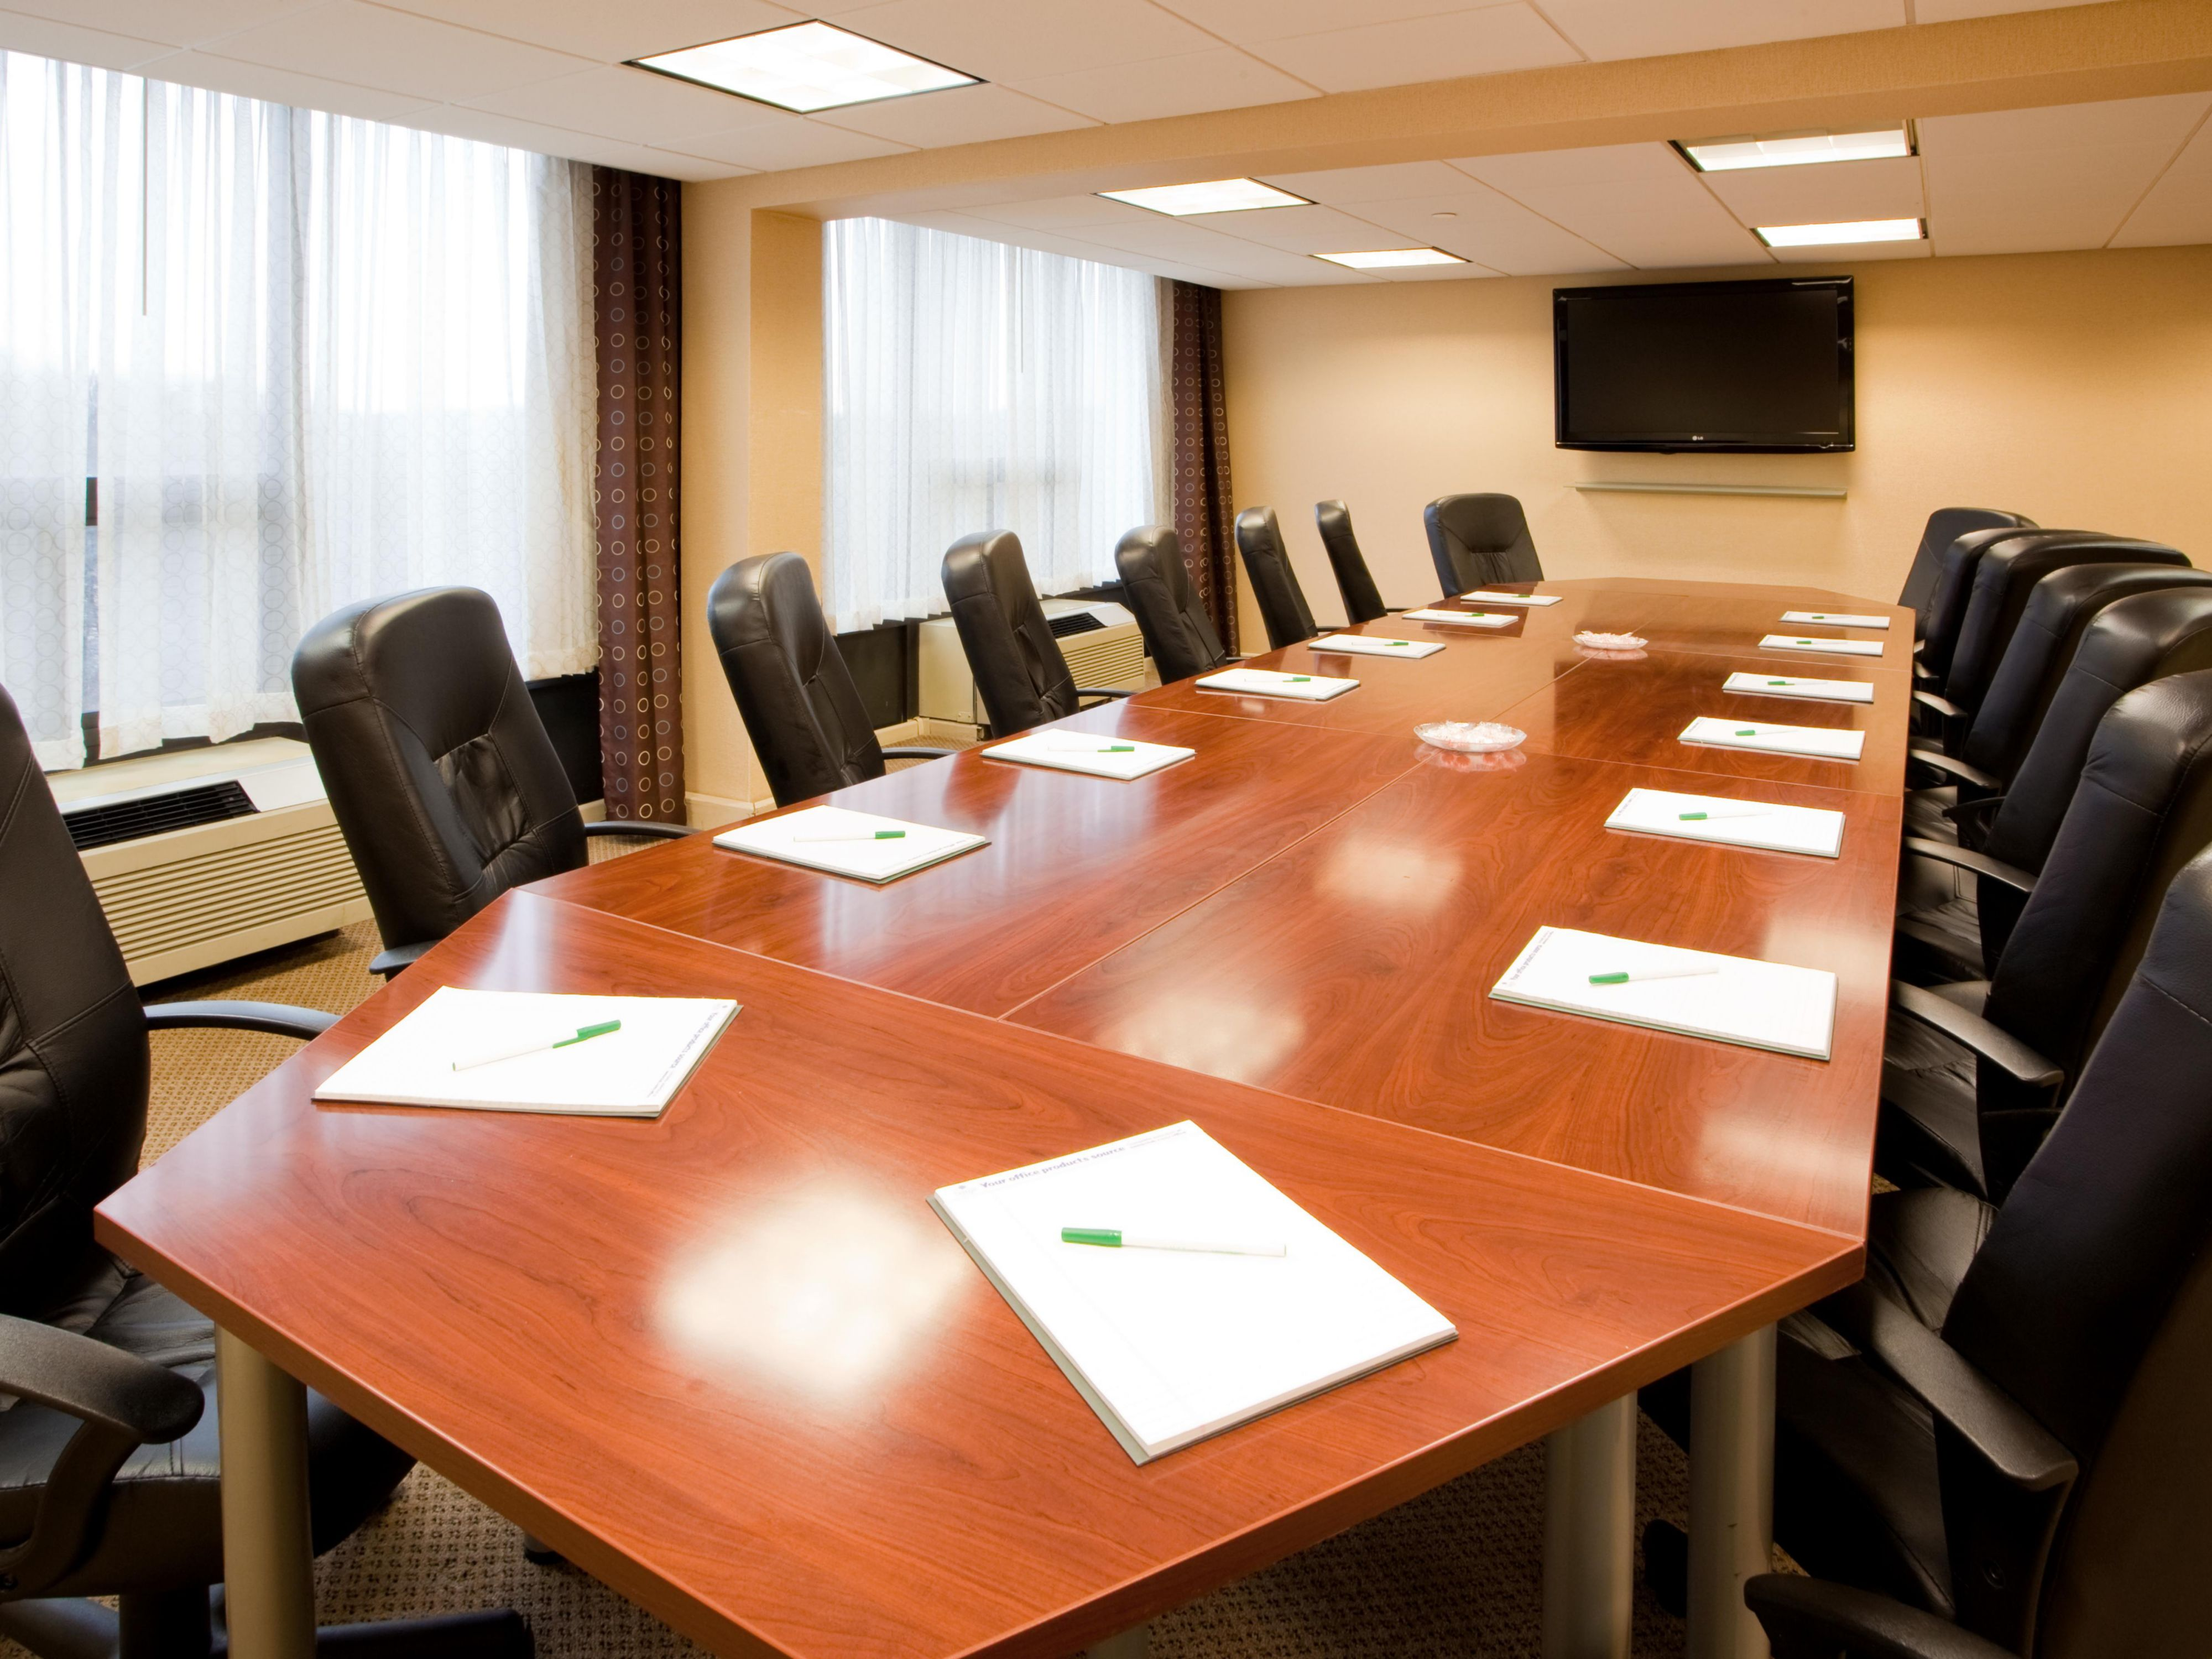 Our state of the art Boardroom will keep your needs met